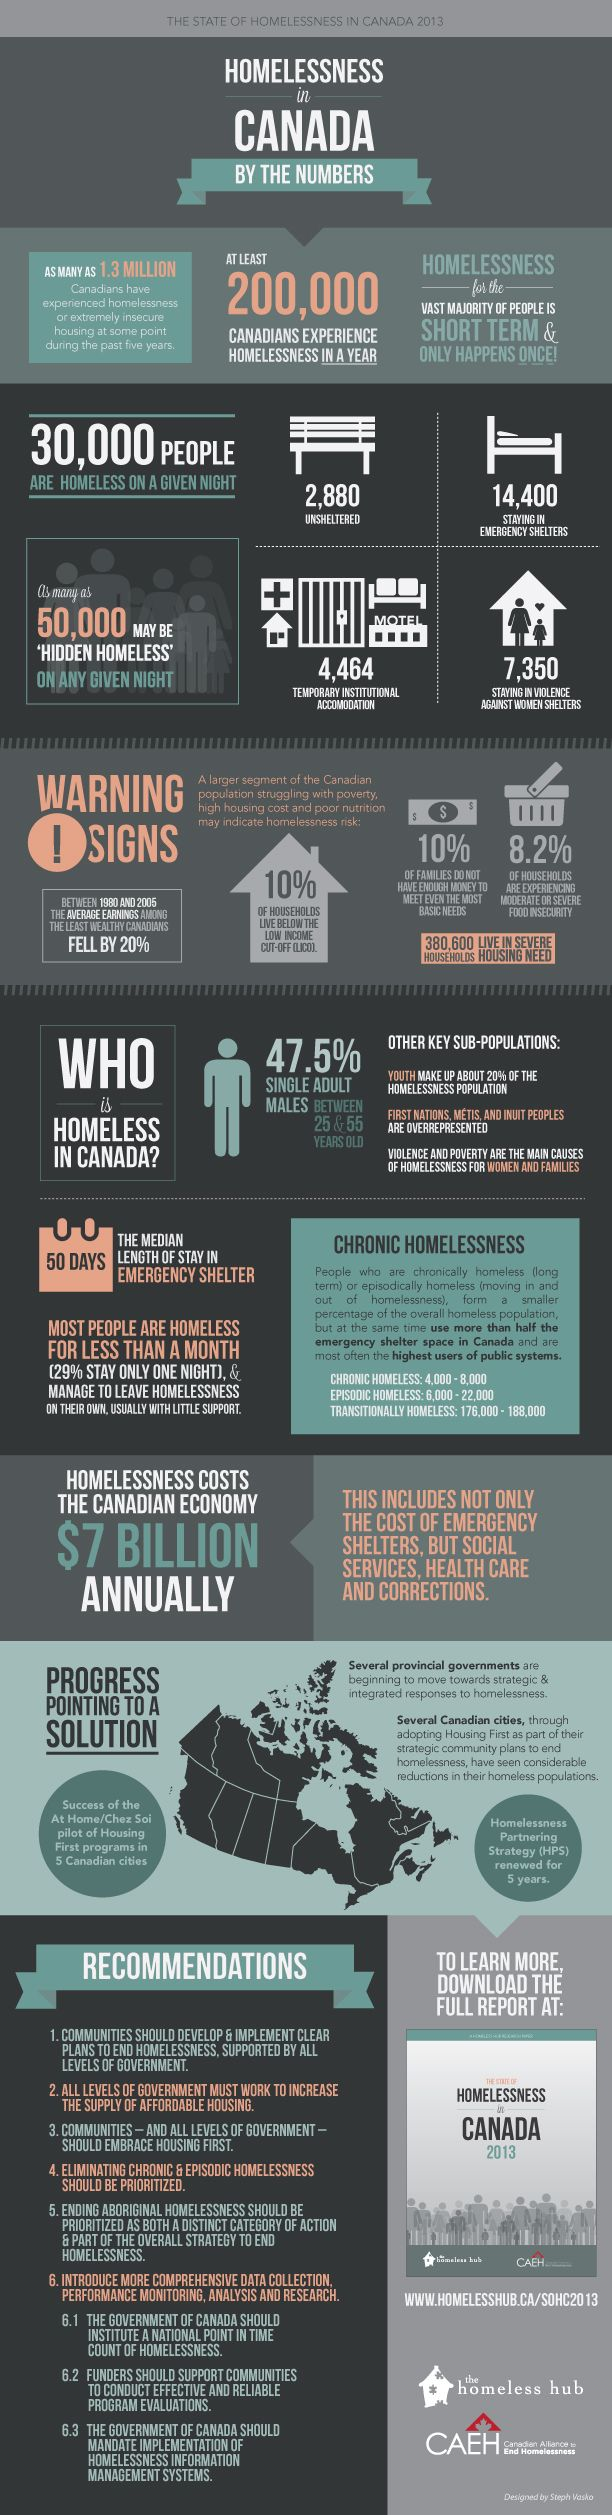 Homeless in Canada infographic